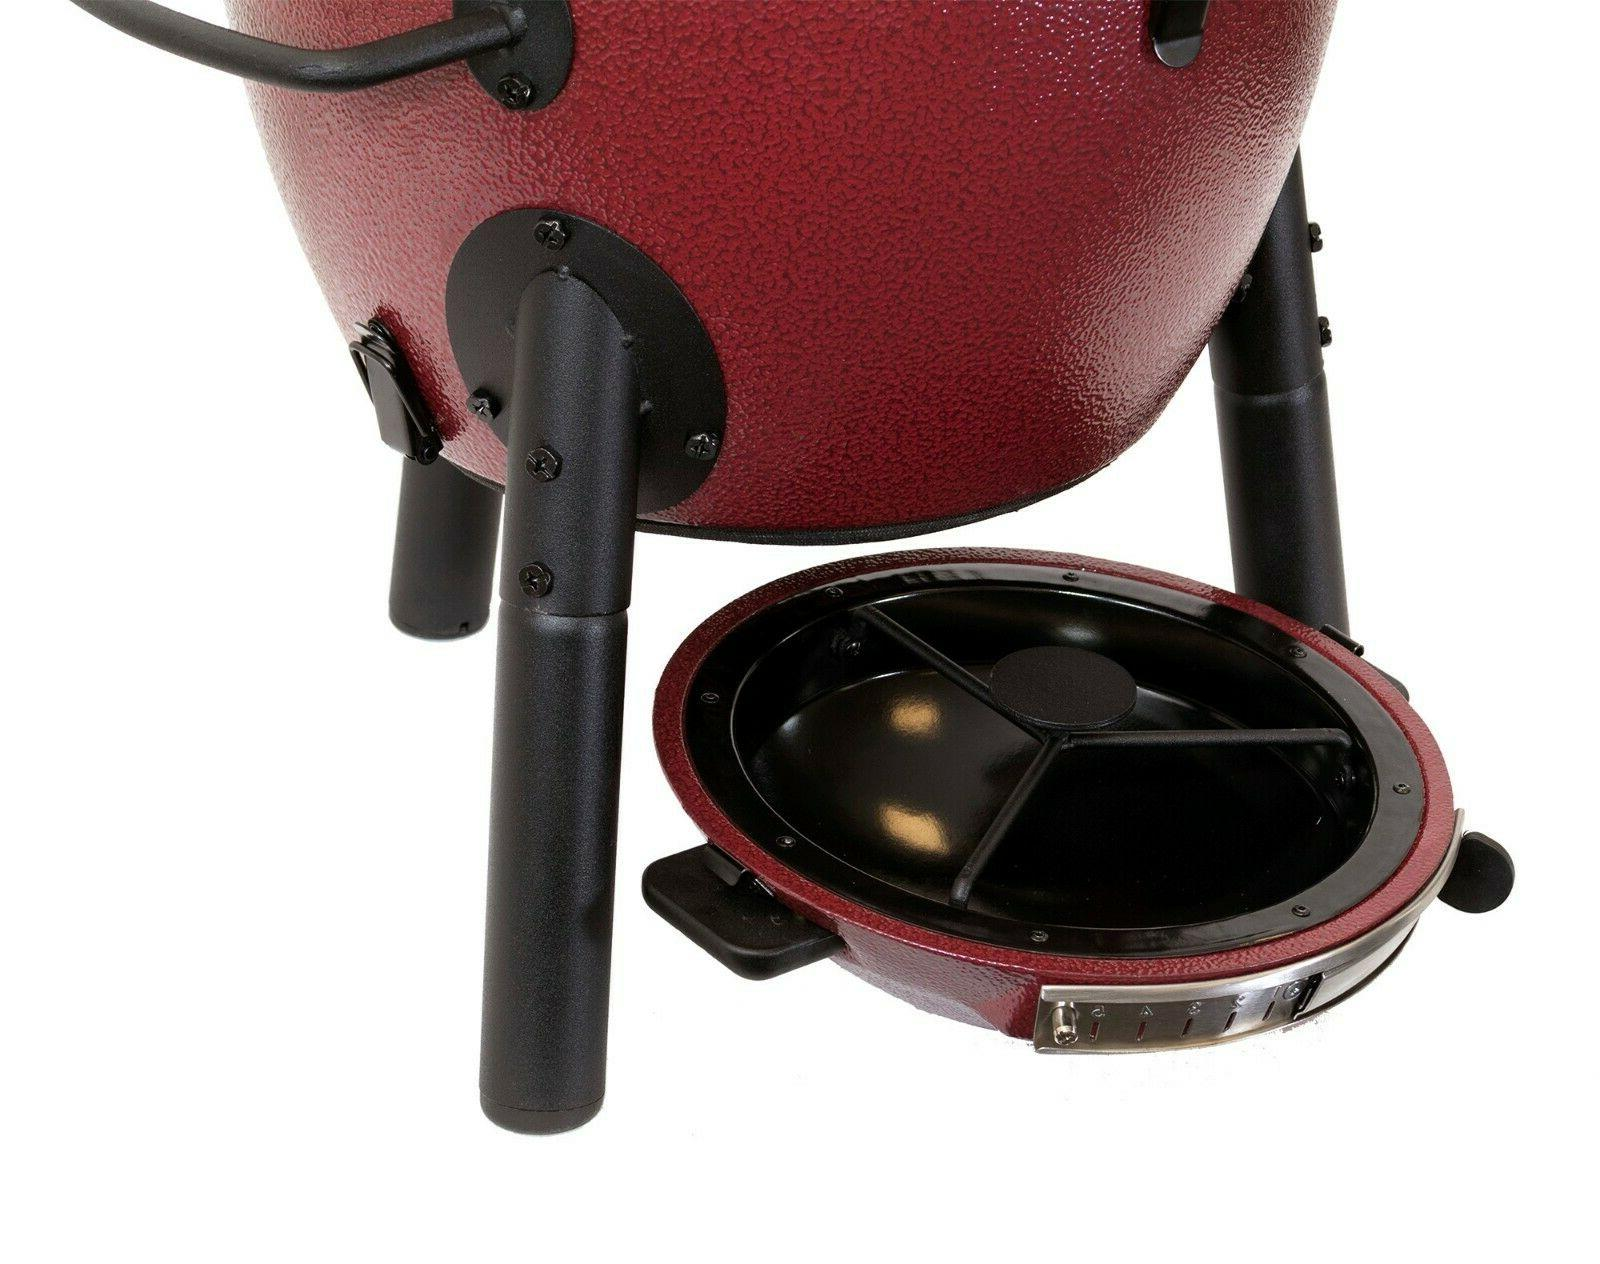 Charcoal Grill Patio Garden Kamado Jr Red,